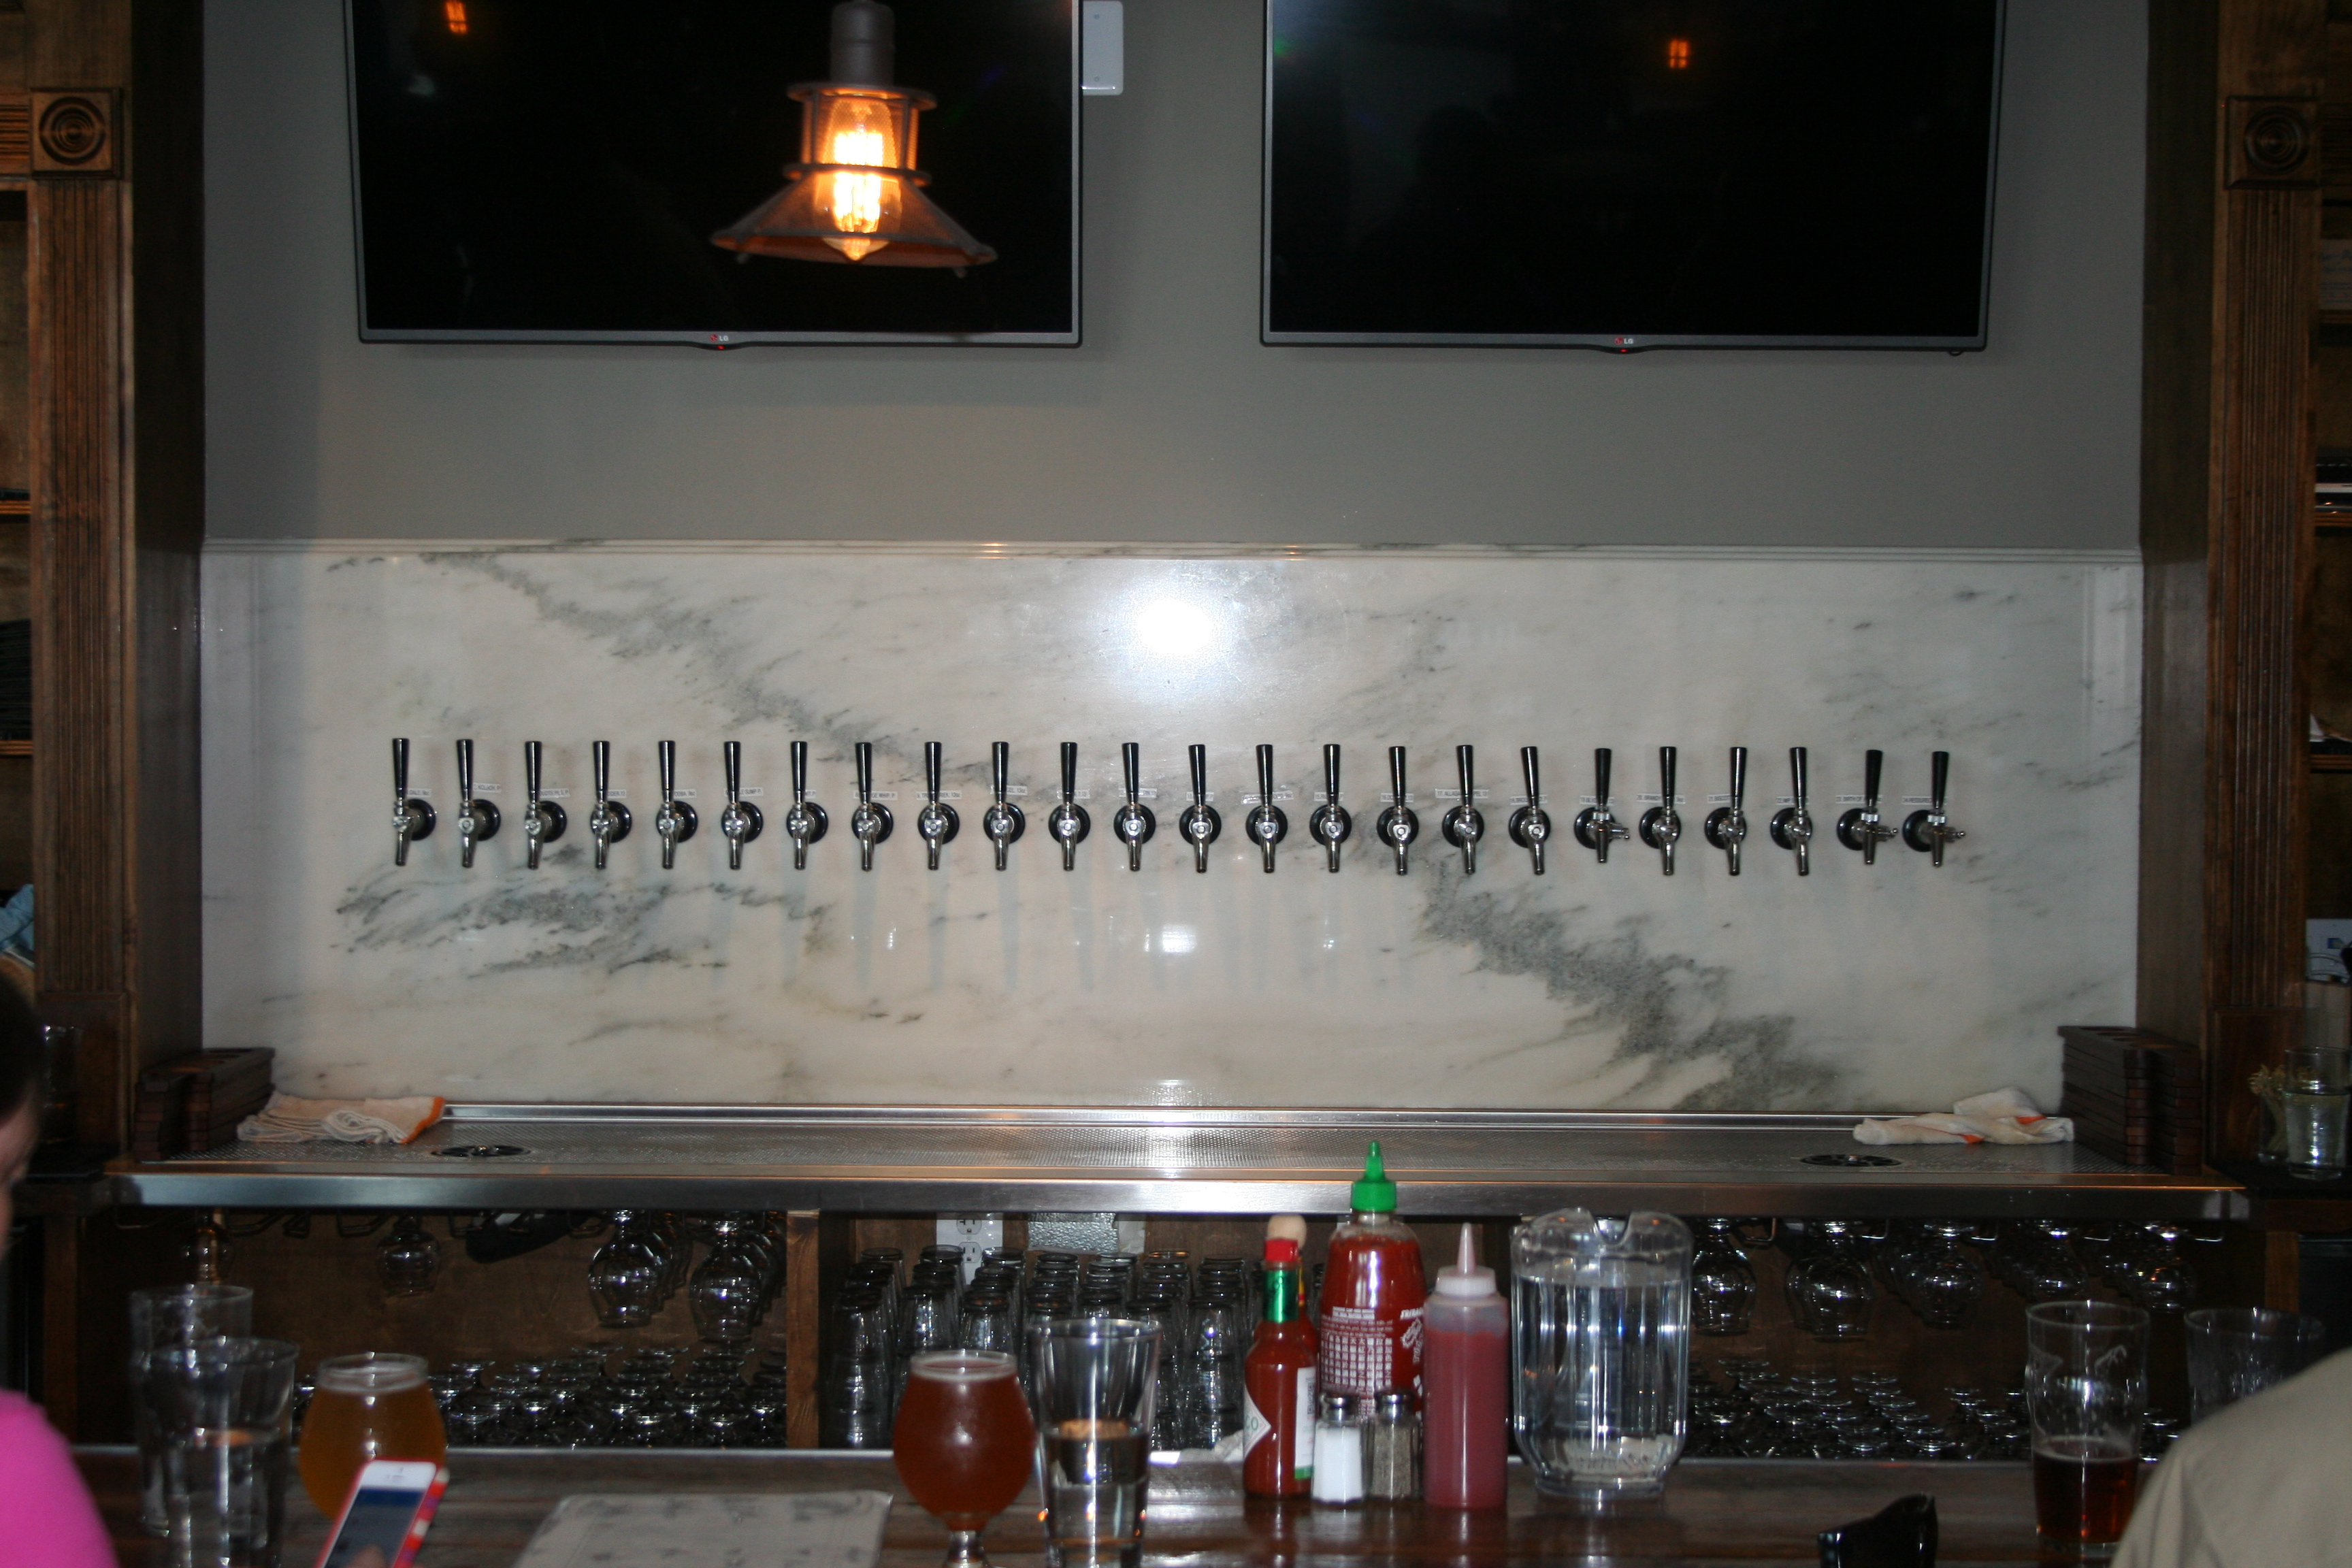 Brookland Pint serves 24 rotating beers on tap. (Photo: Mark Heckathorn/DC on Heels)